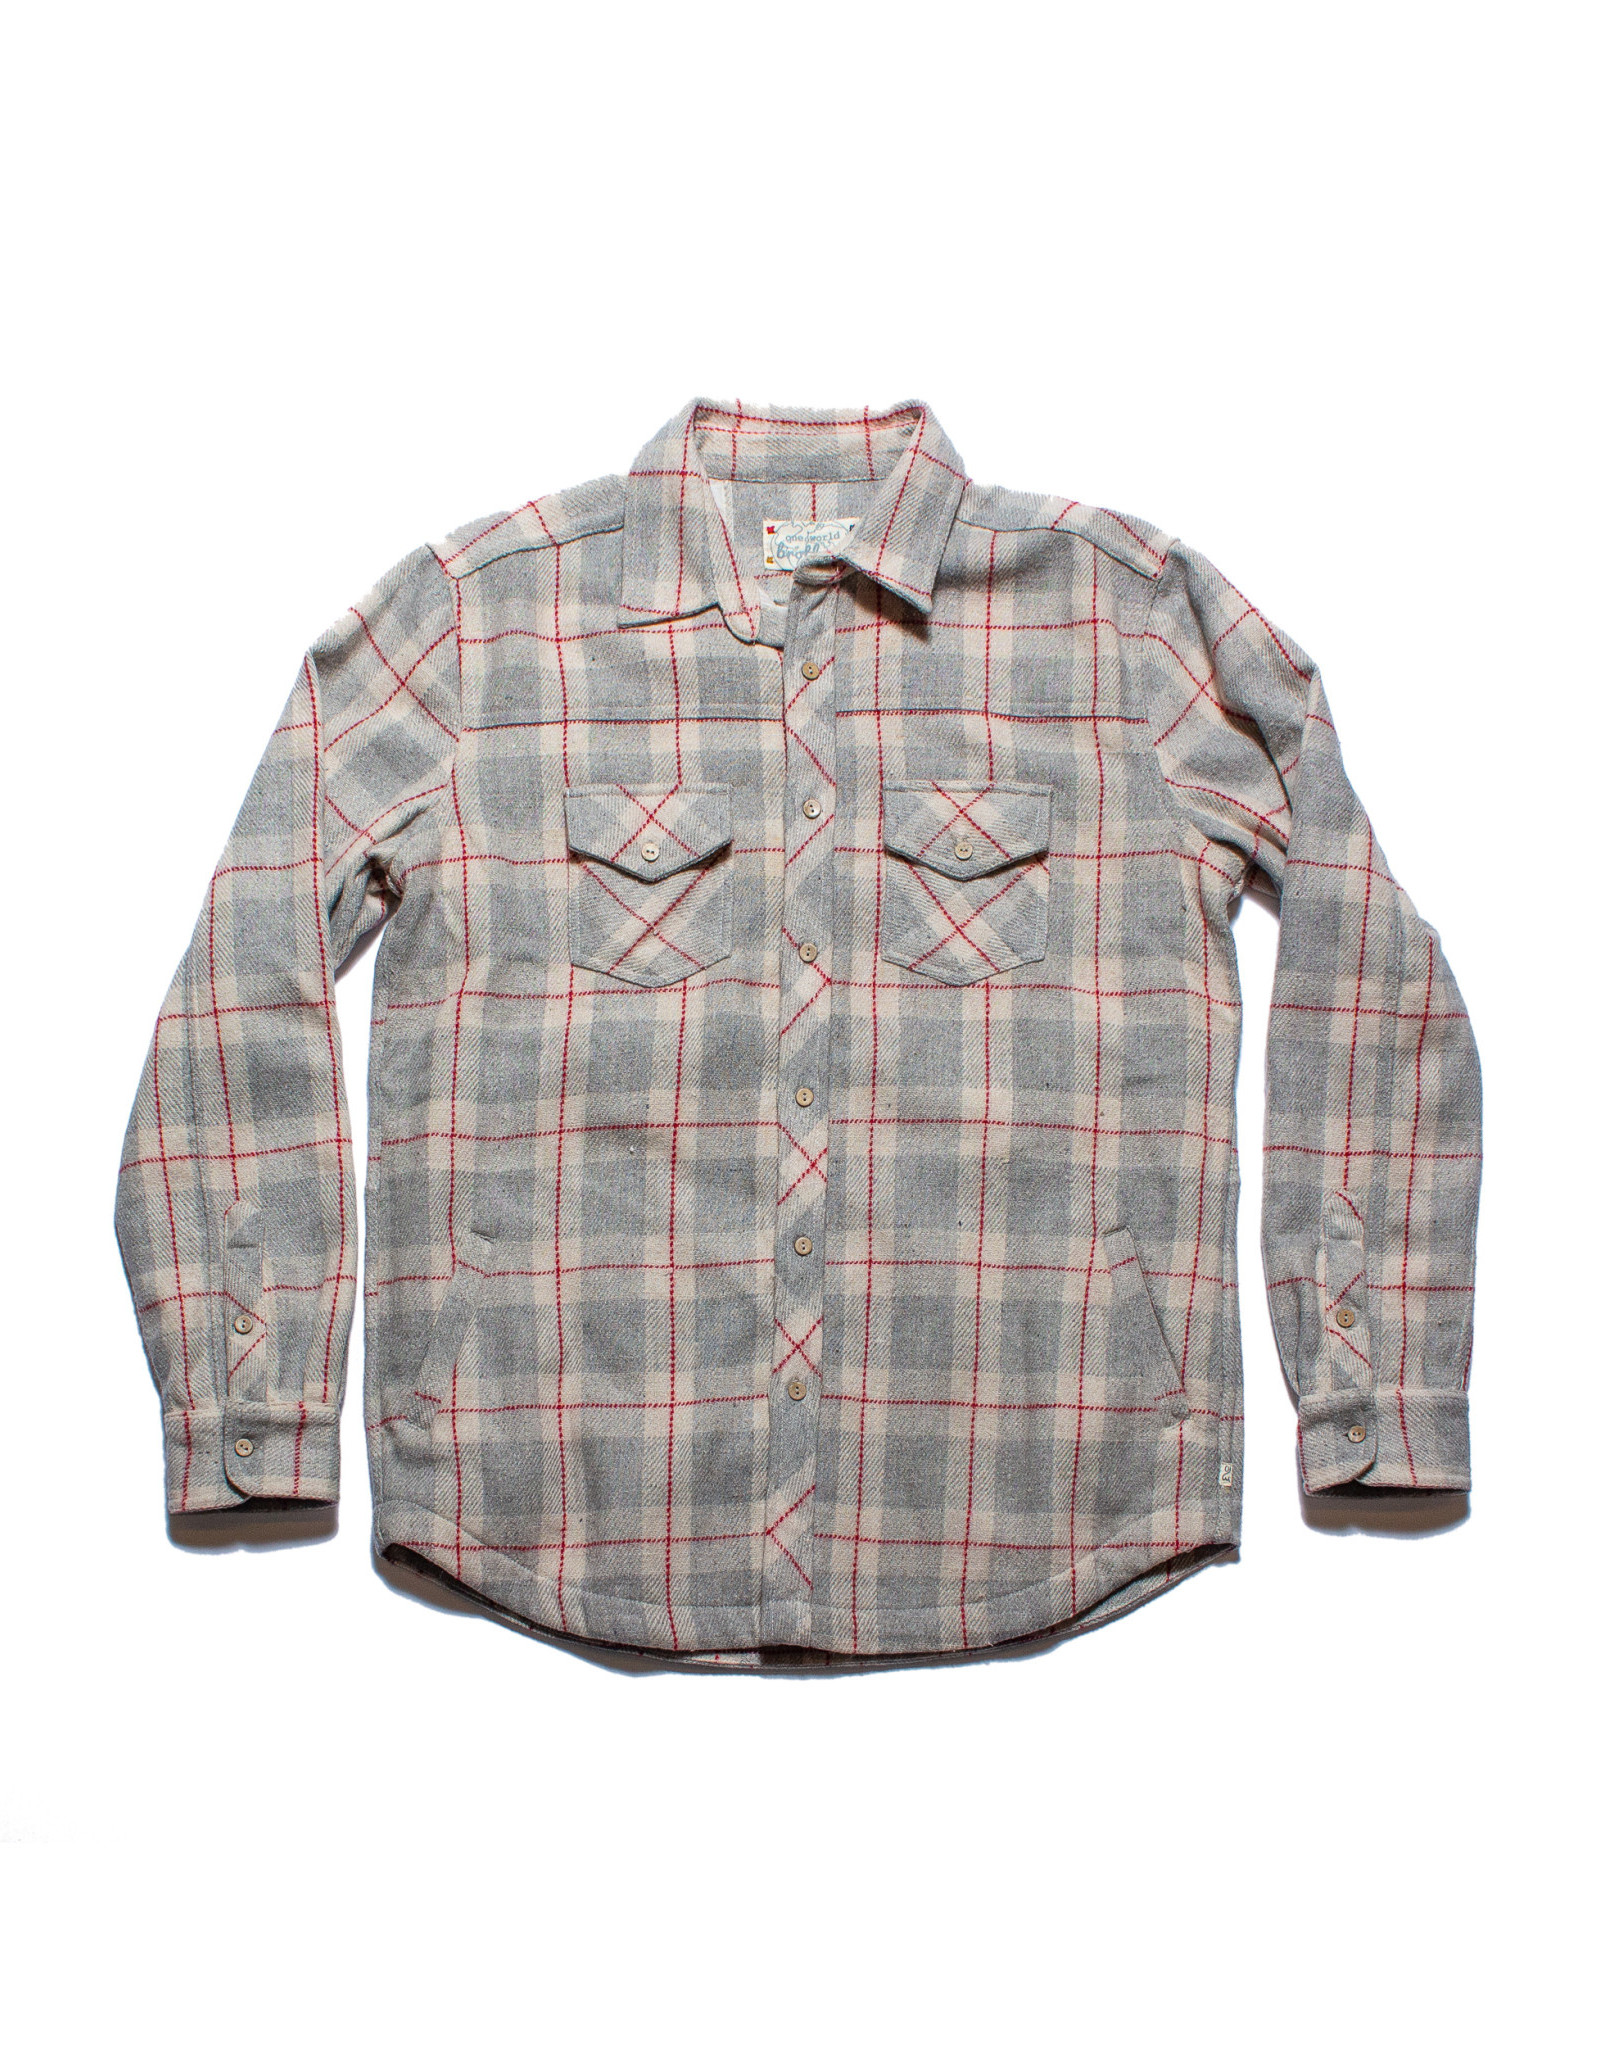 One World Brothers Wool Shirt Jacket